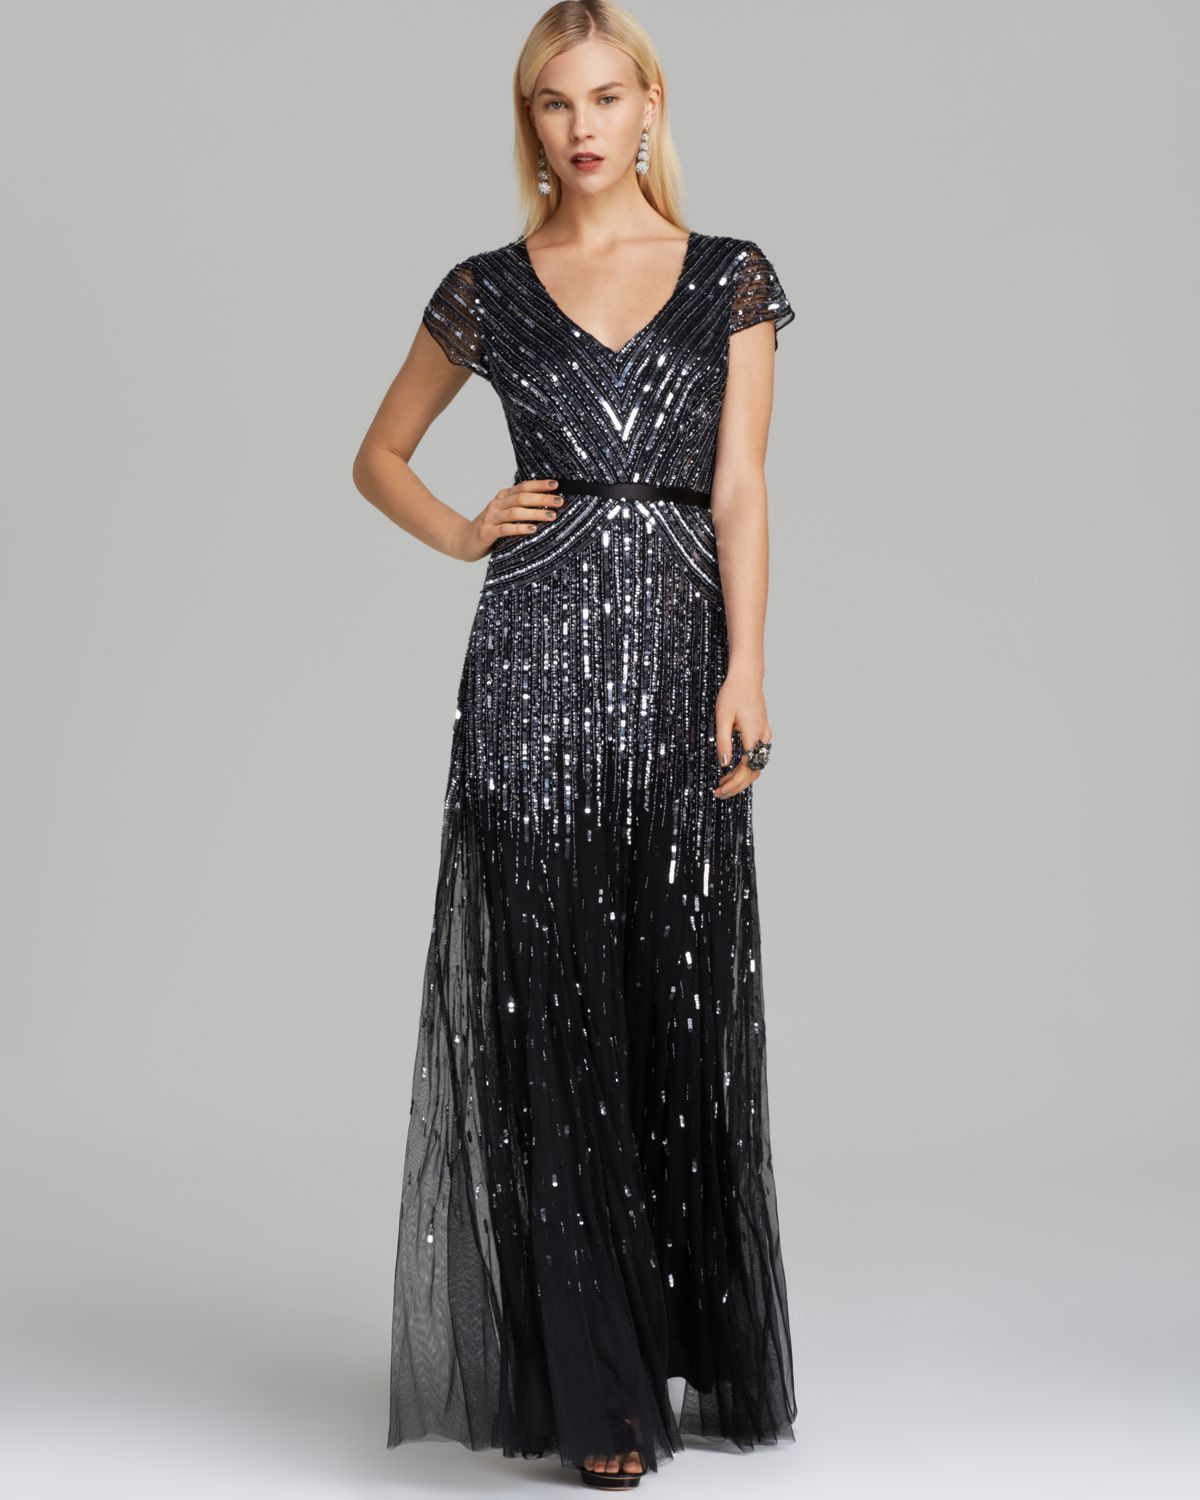 7d9019c607e733 Adrianna Papell Beaded V-neck Gown - Gunmetal in 2019 | To Wear ...